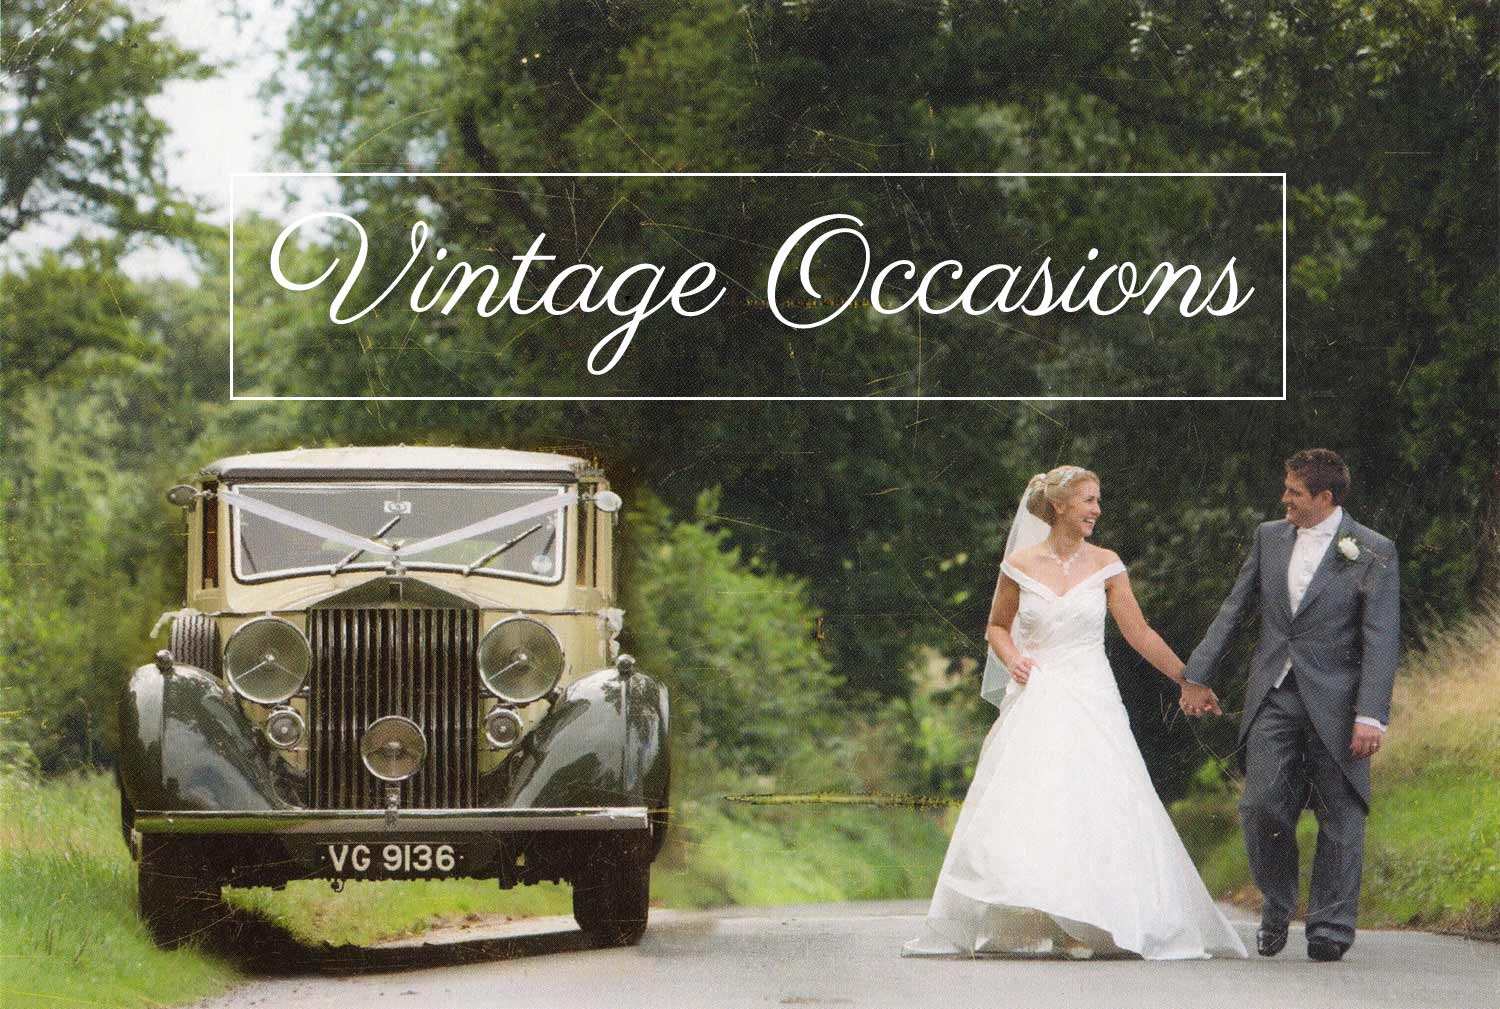 Vintage Occasions Wedding Cars